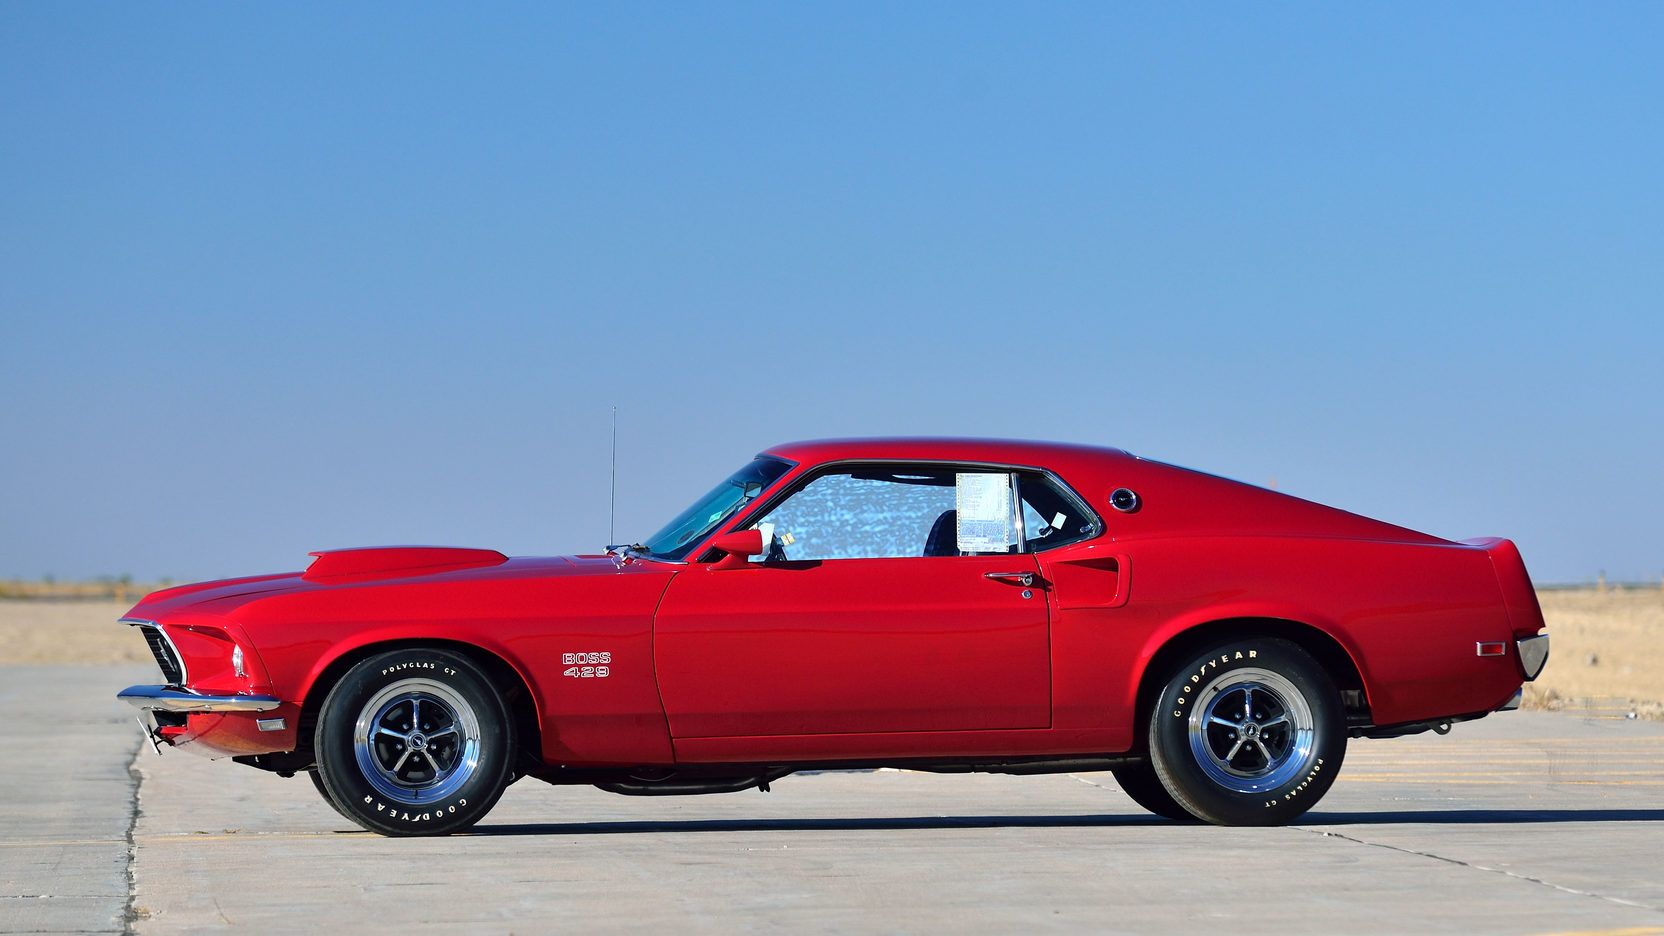 1969 Ford Mustang Boss 429 In Candy Apple Red Kk 1663 Mustang